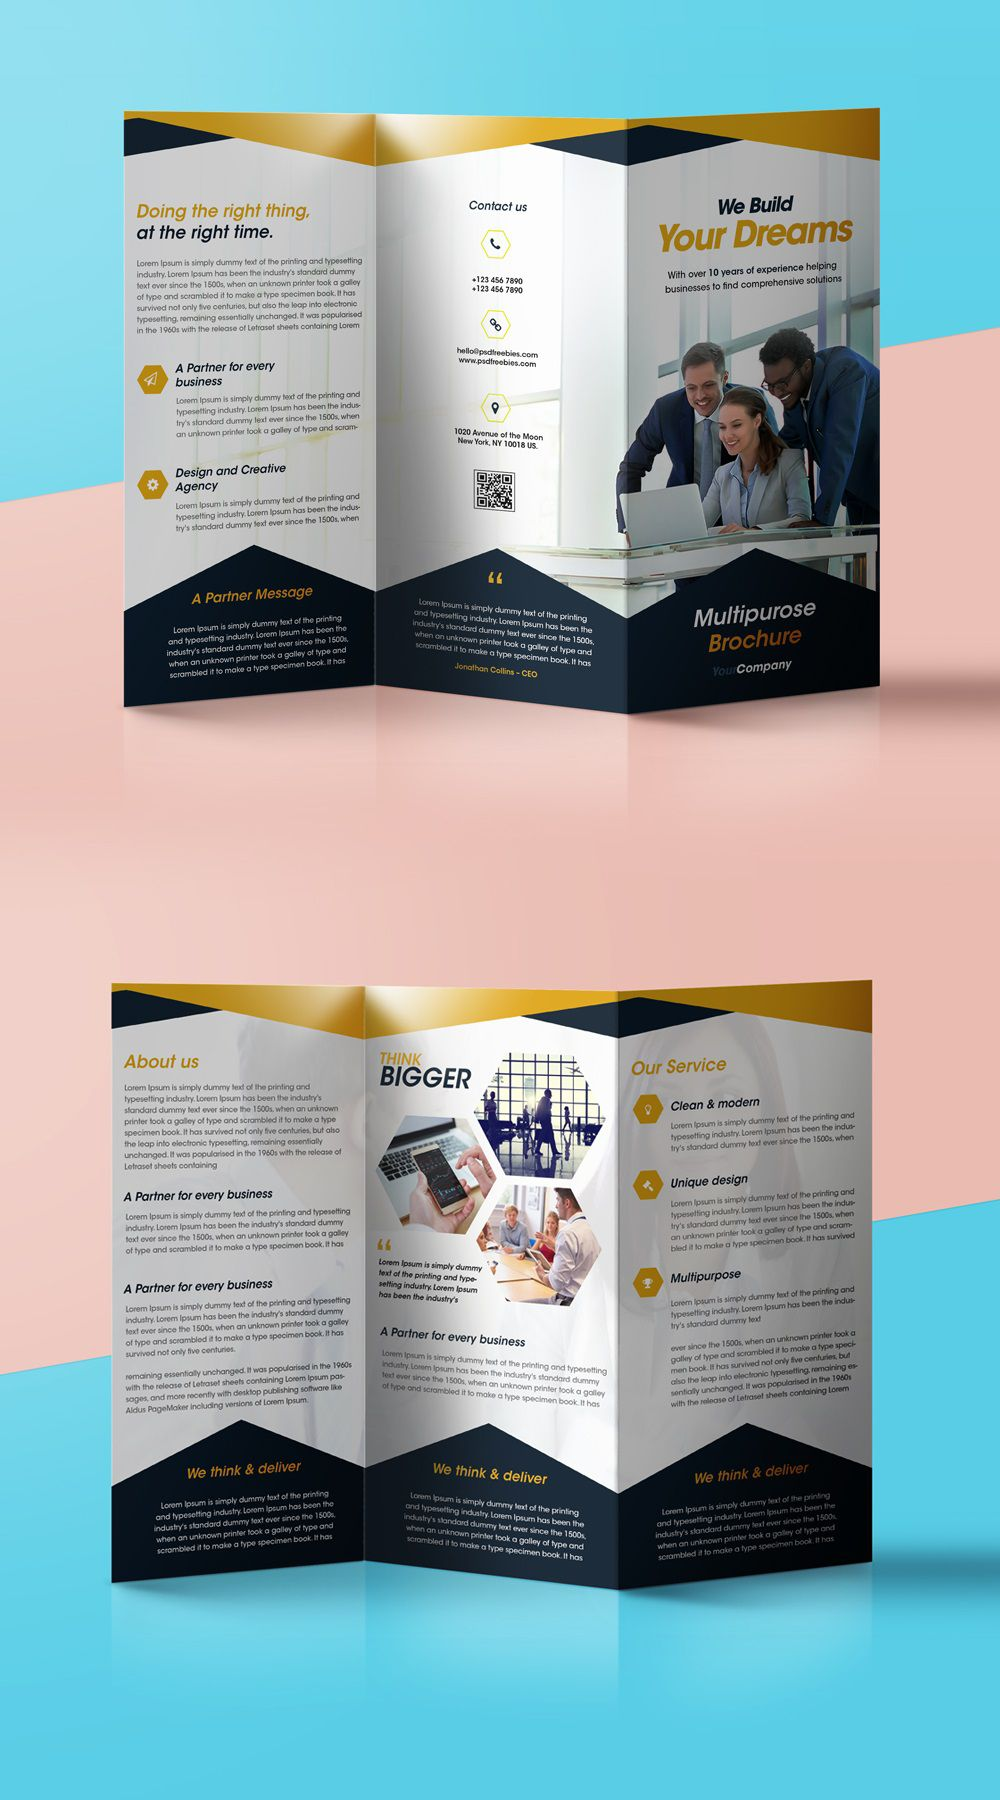 006 Incredible 3 Fold Brochure Template High Def  Templates For FreeFull